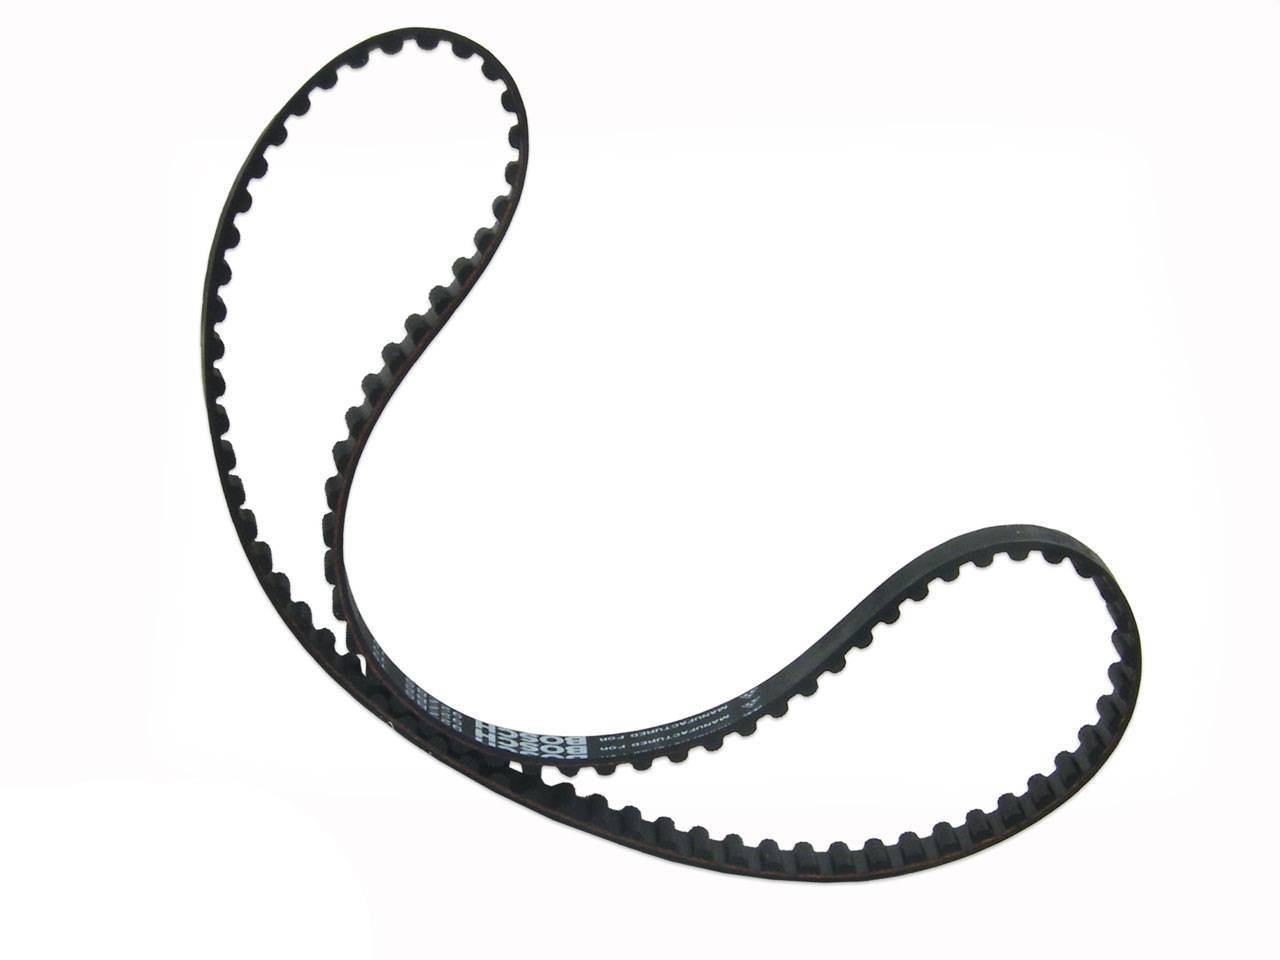 Mitsubishi Lancer CA/CB 1.5Ltr Timing Belt kit 89-90